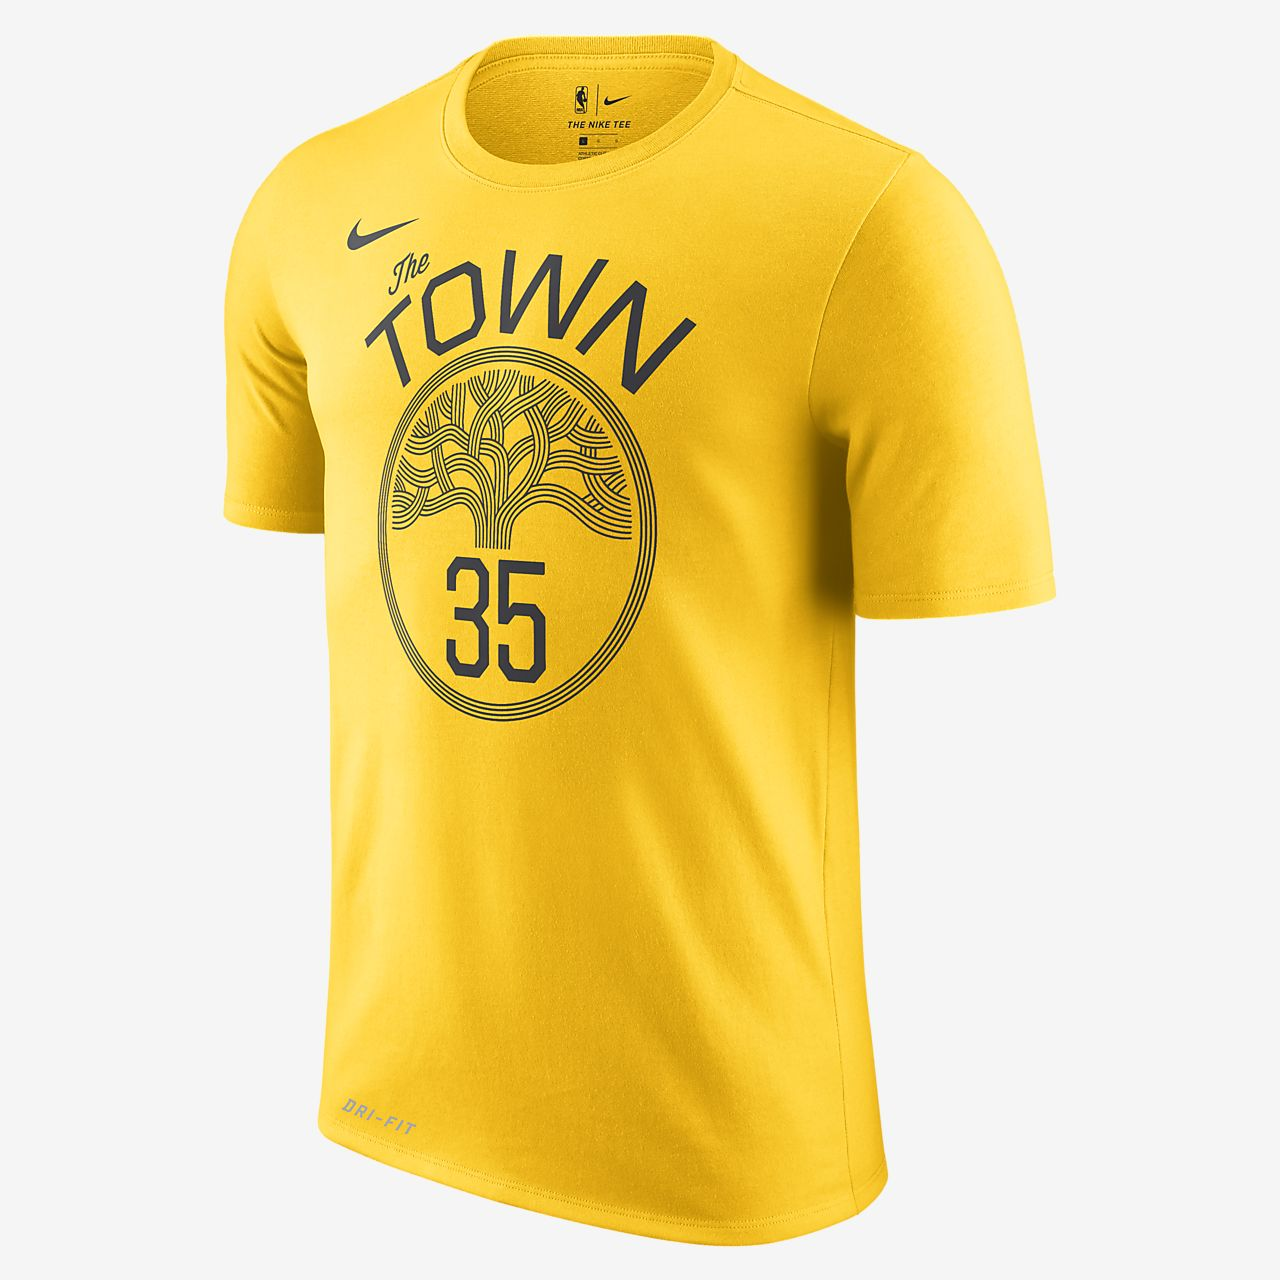 5a10c972e7 Kevin Durant Golden State Warriors City Edition Nike Dri-FIT Men s ...